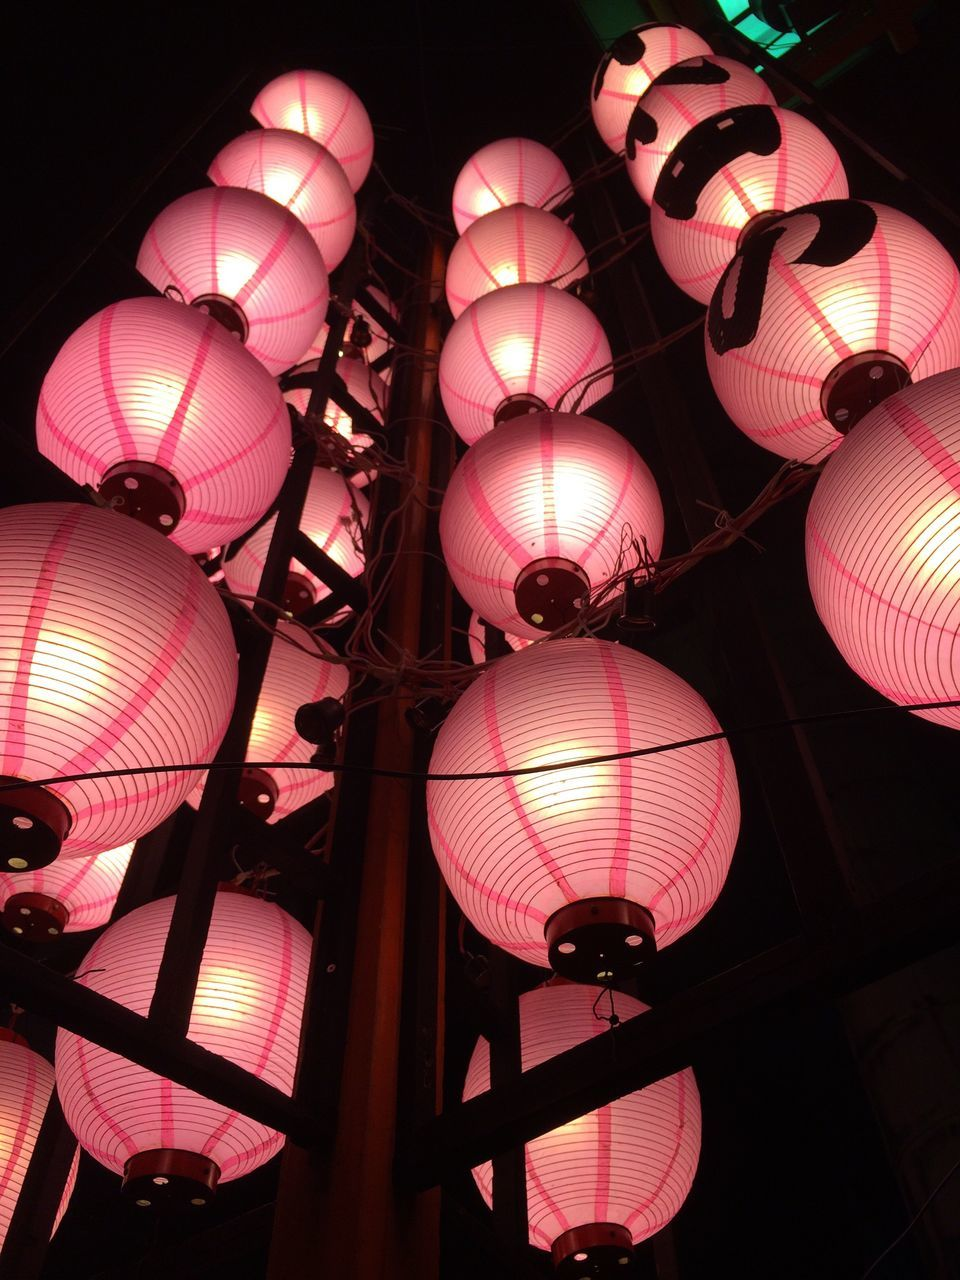 lighting equipment, chinese lantern, lantern, hanging, illuminated, decoration, low angle view, chinese lantern festival, night, no people, red, indoors